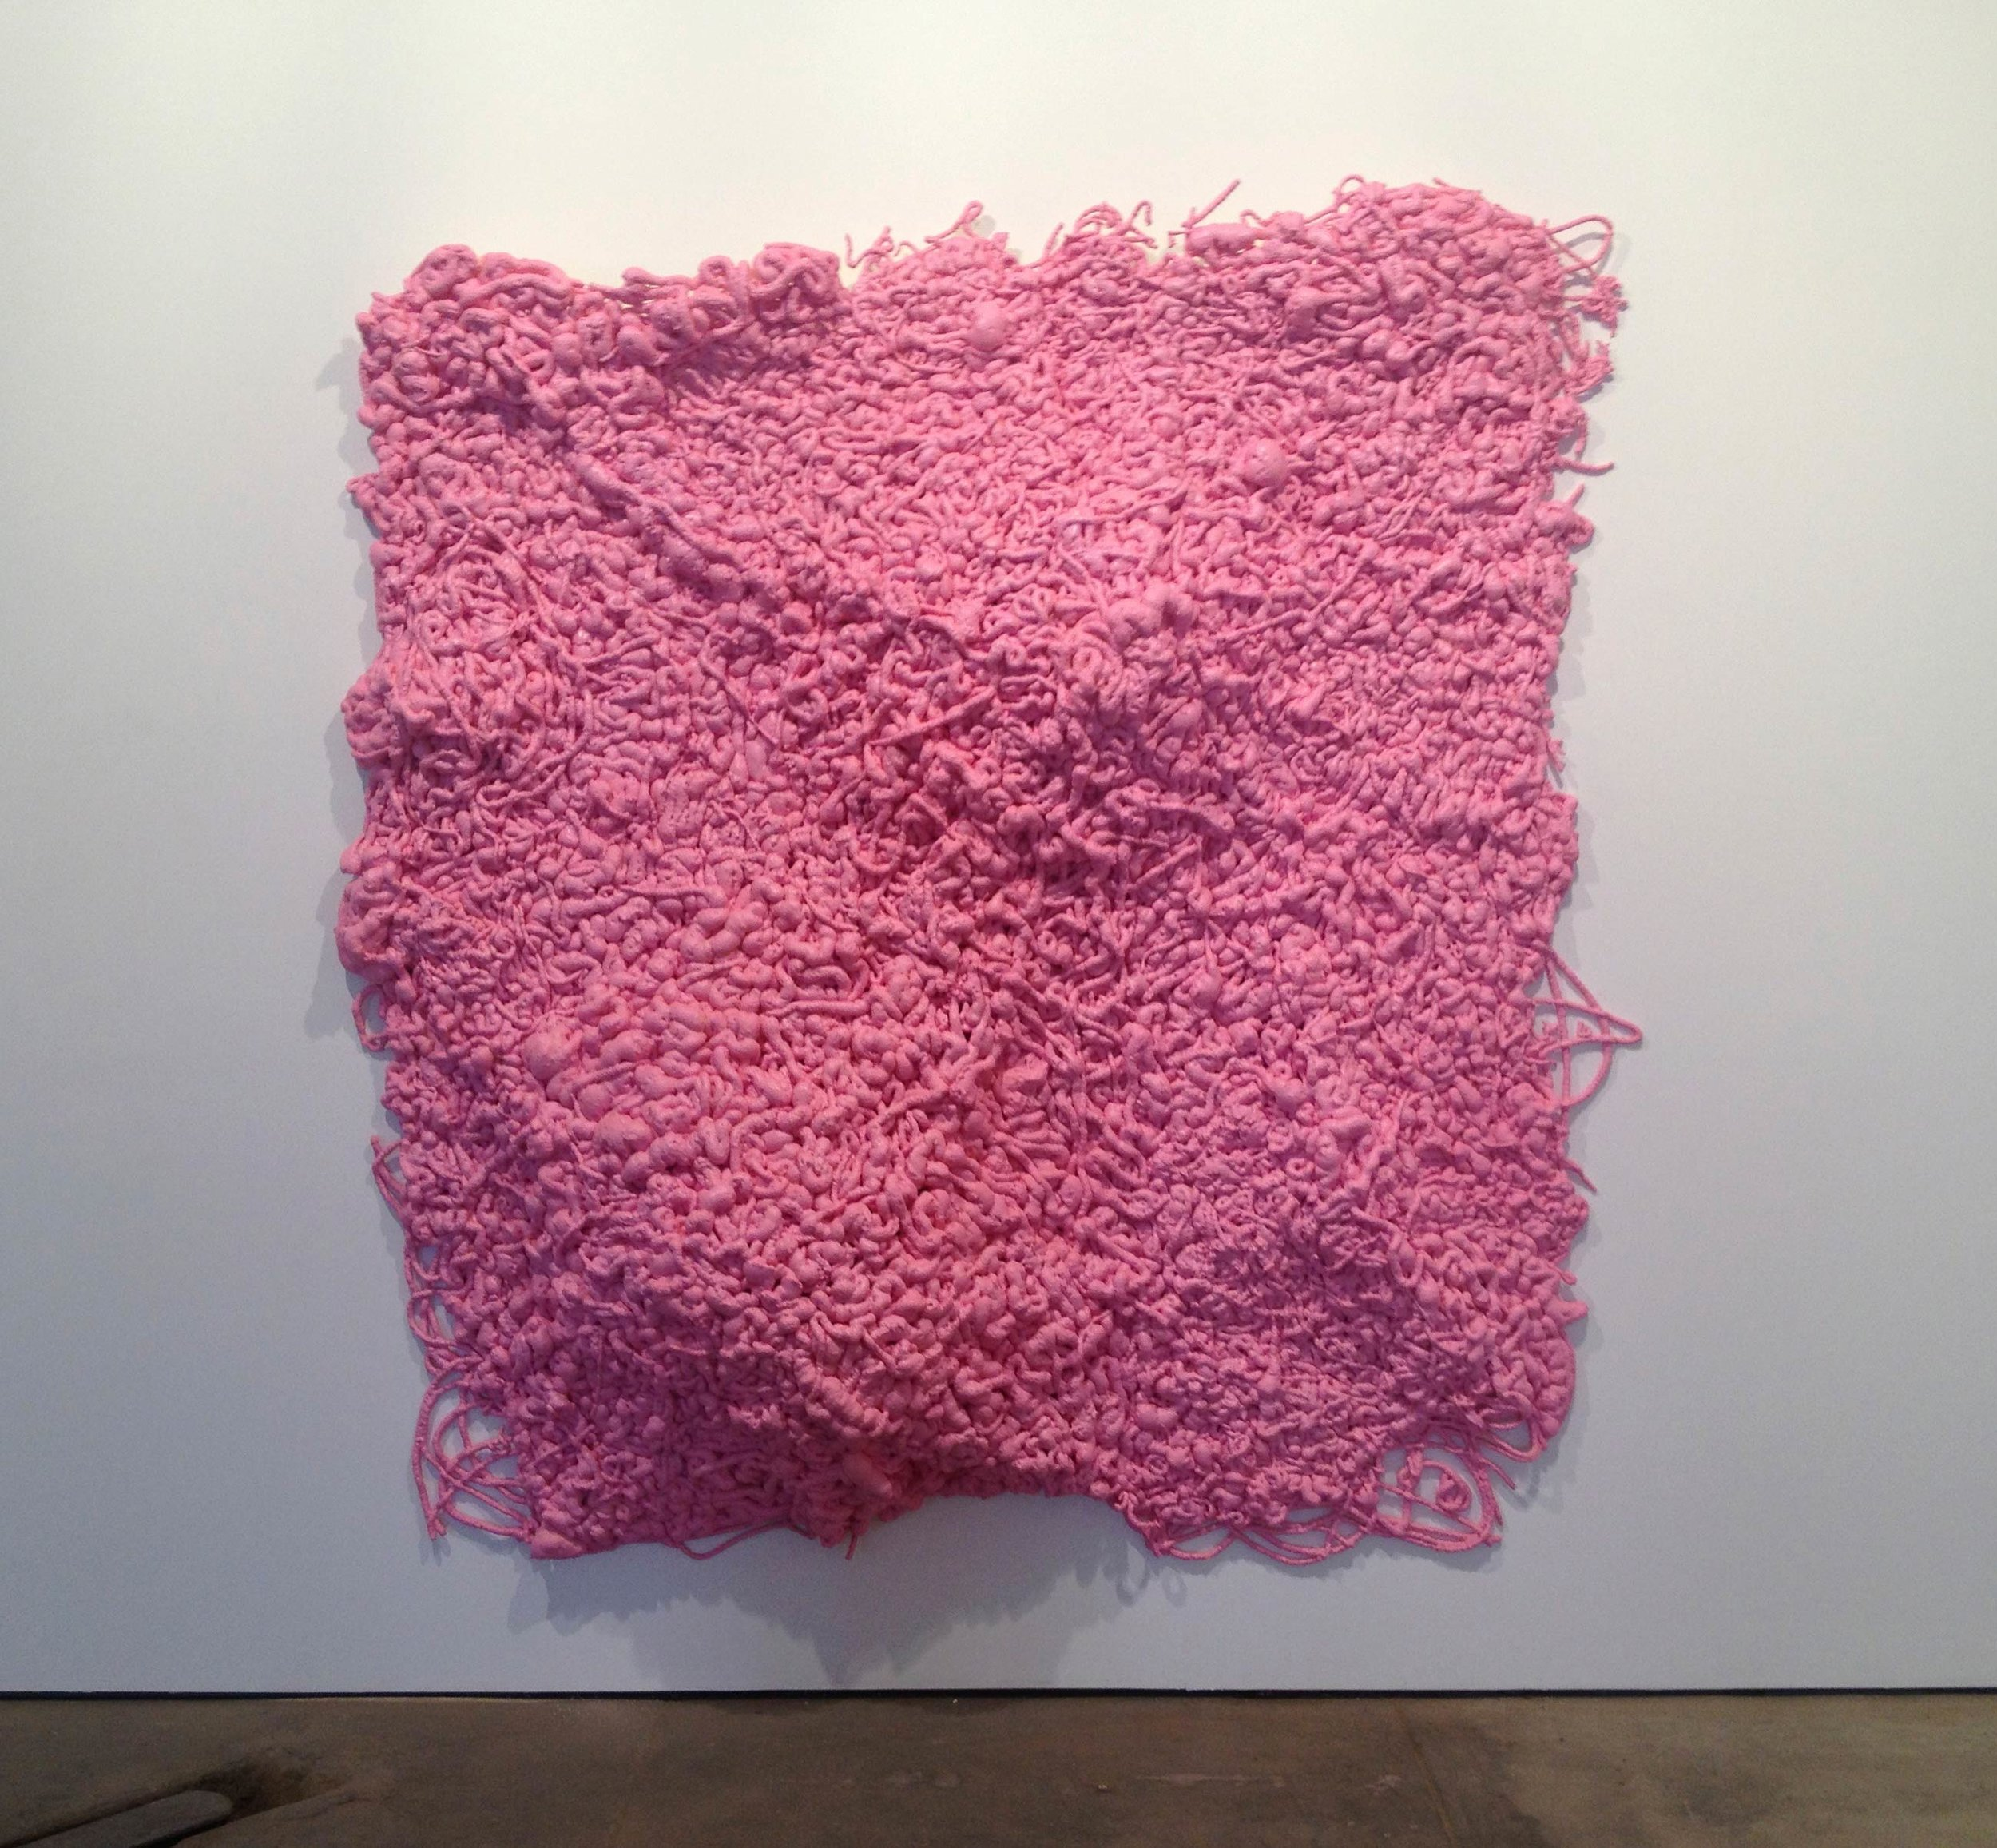 sam_schonzeit_sprayfoam_pink.jpg